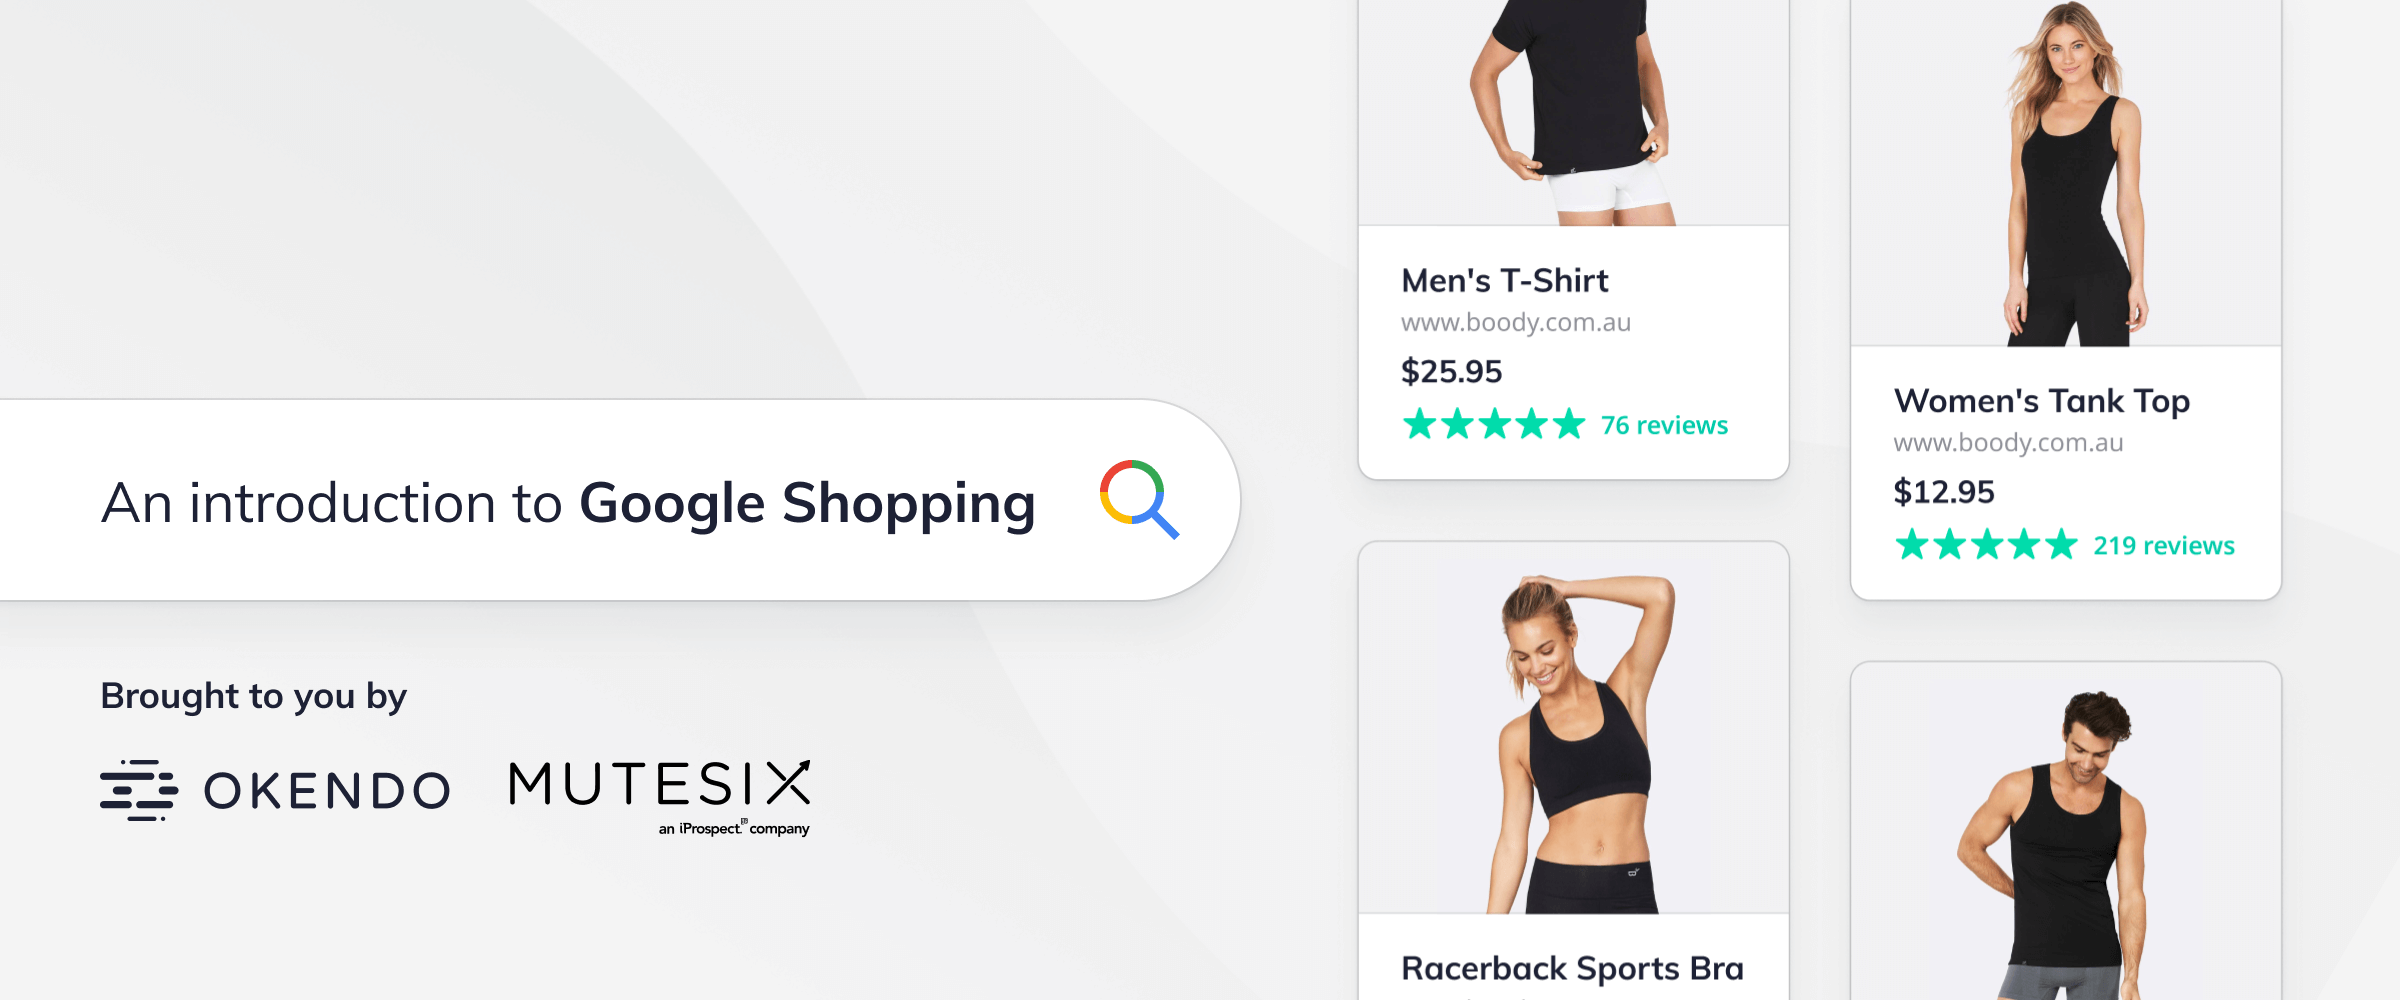 An Introduction to Google Shopping & Reviews cover image